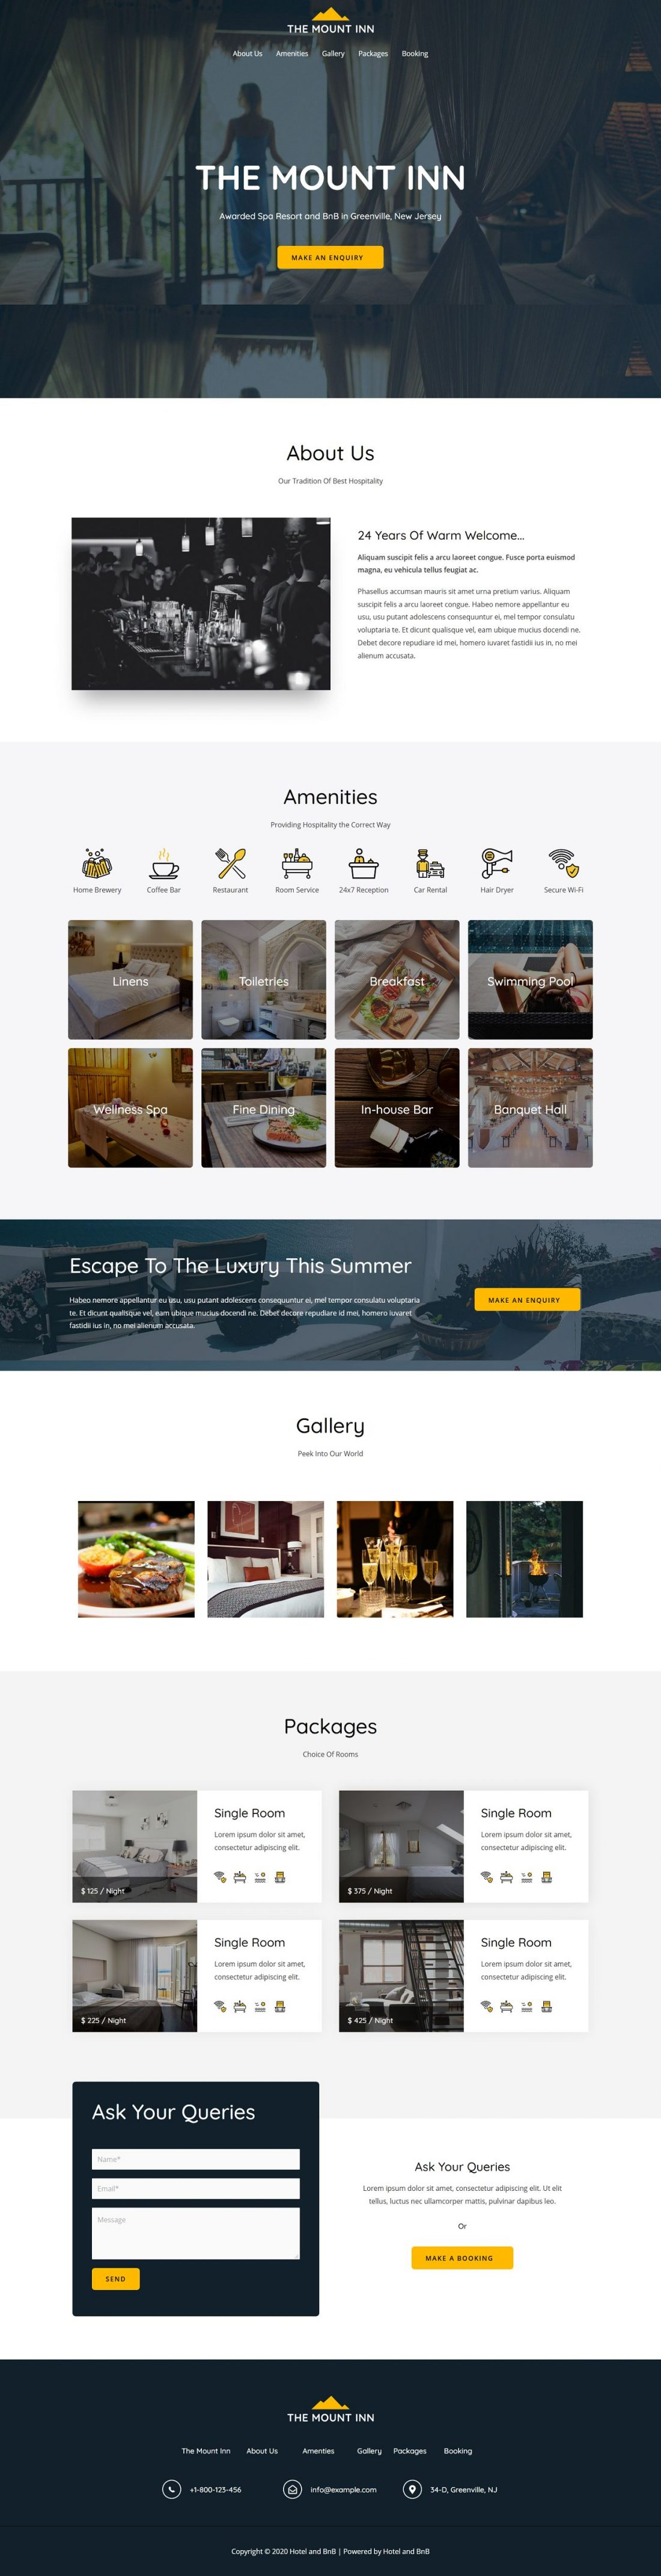 Fagowi.com Website Design Templates For Hotel or BNB - Home Page Image